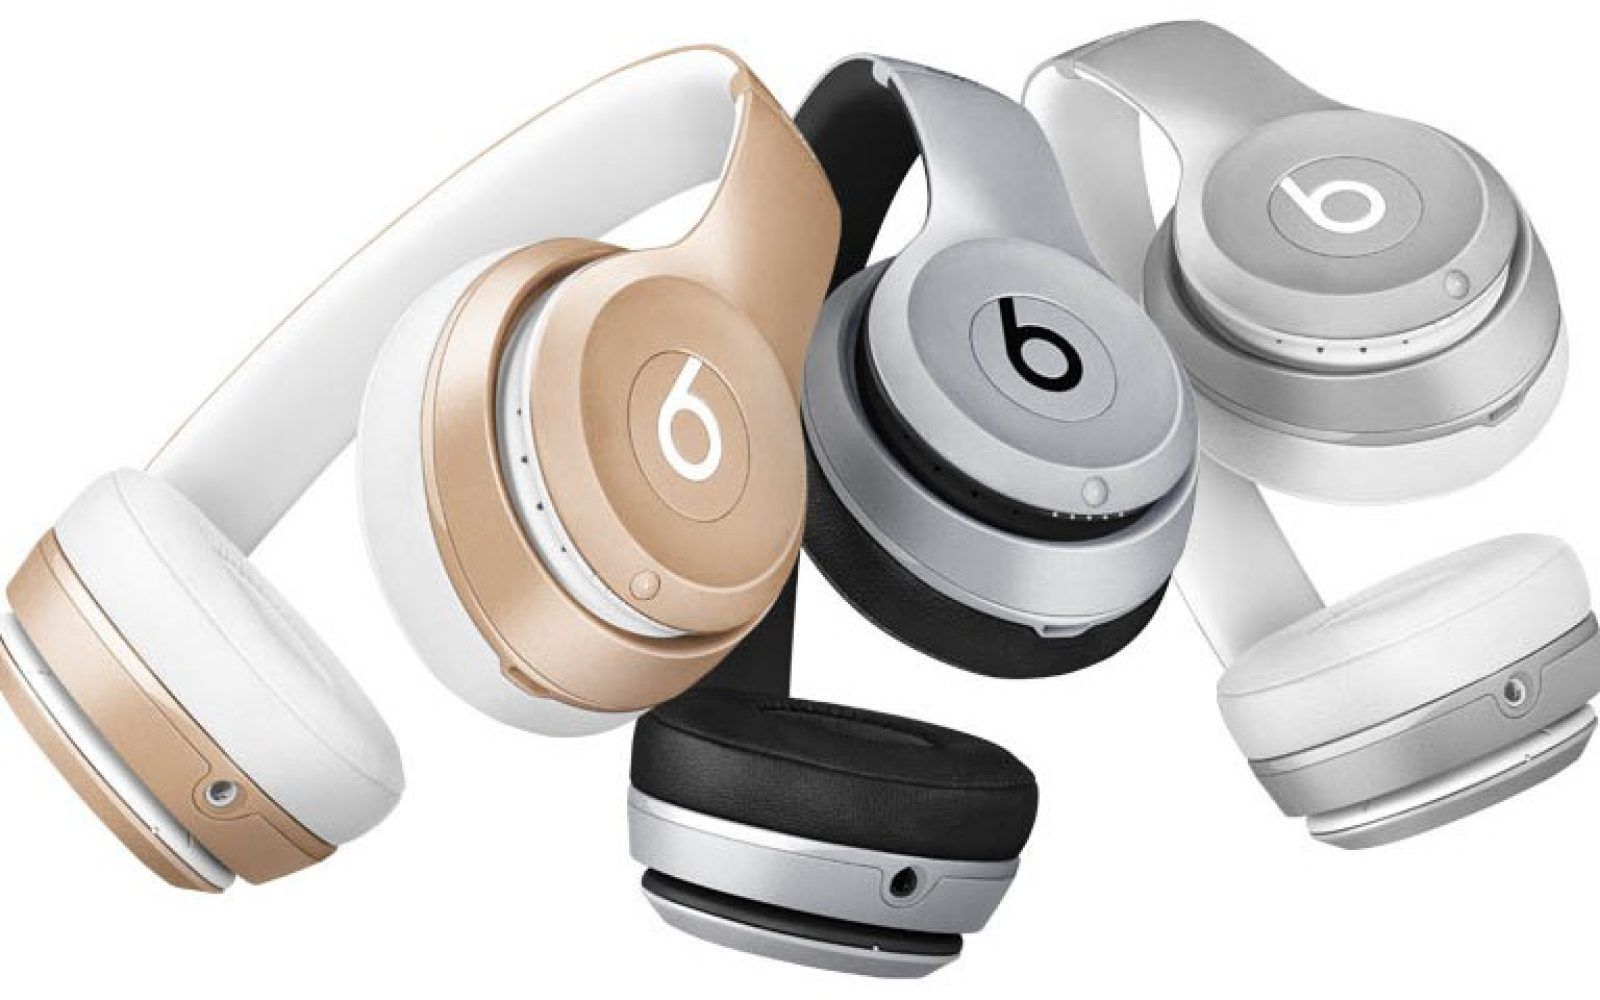 952156413a3 Beats Solo2 wireless headphones now available in iPhone/Apple  Watch-matching gold, silver & space gray